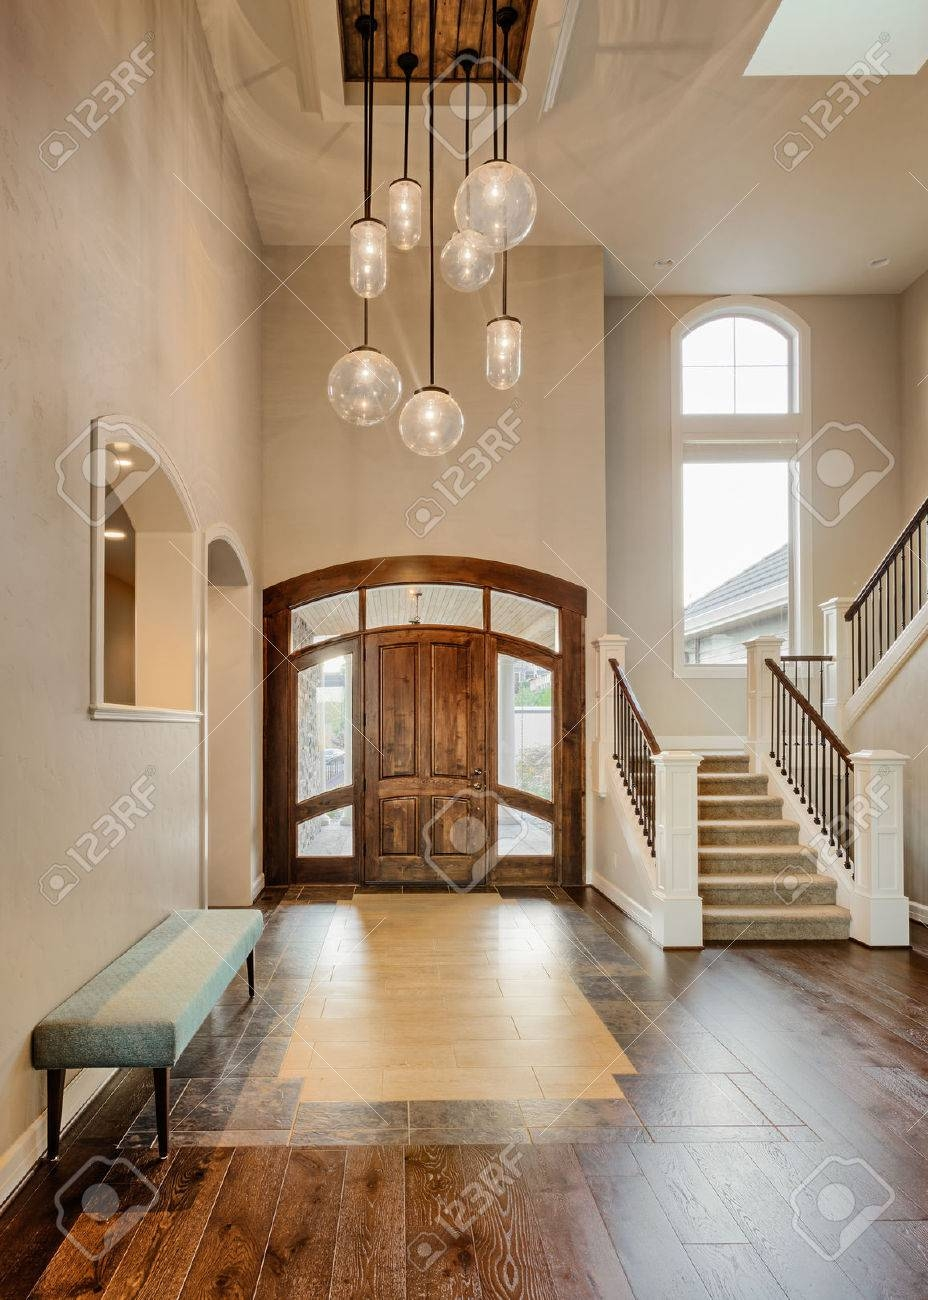 Beautiful Foyer In Home; Entryway With Stairs, Pendant Lights with regard to Pendant Lights for Vaulted Ceilings (Image 2 of 15)